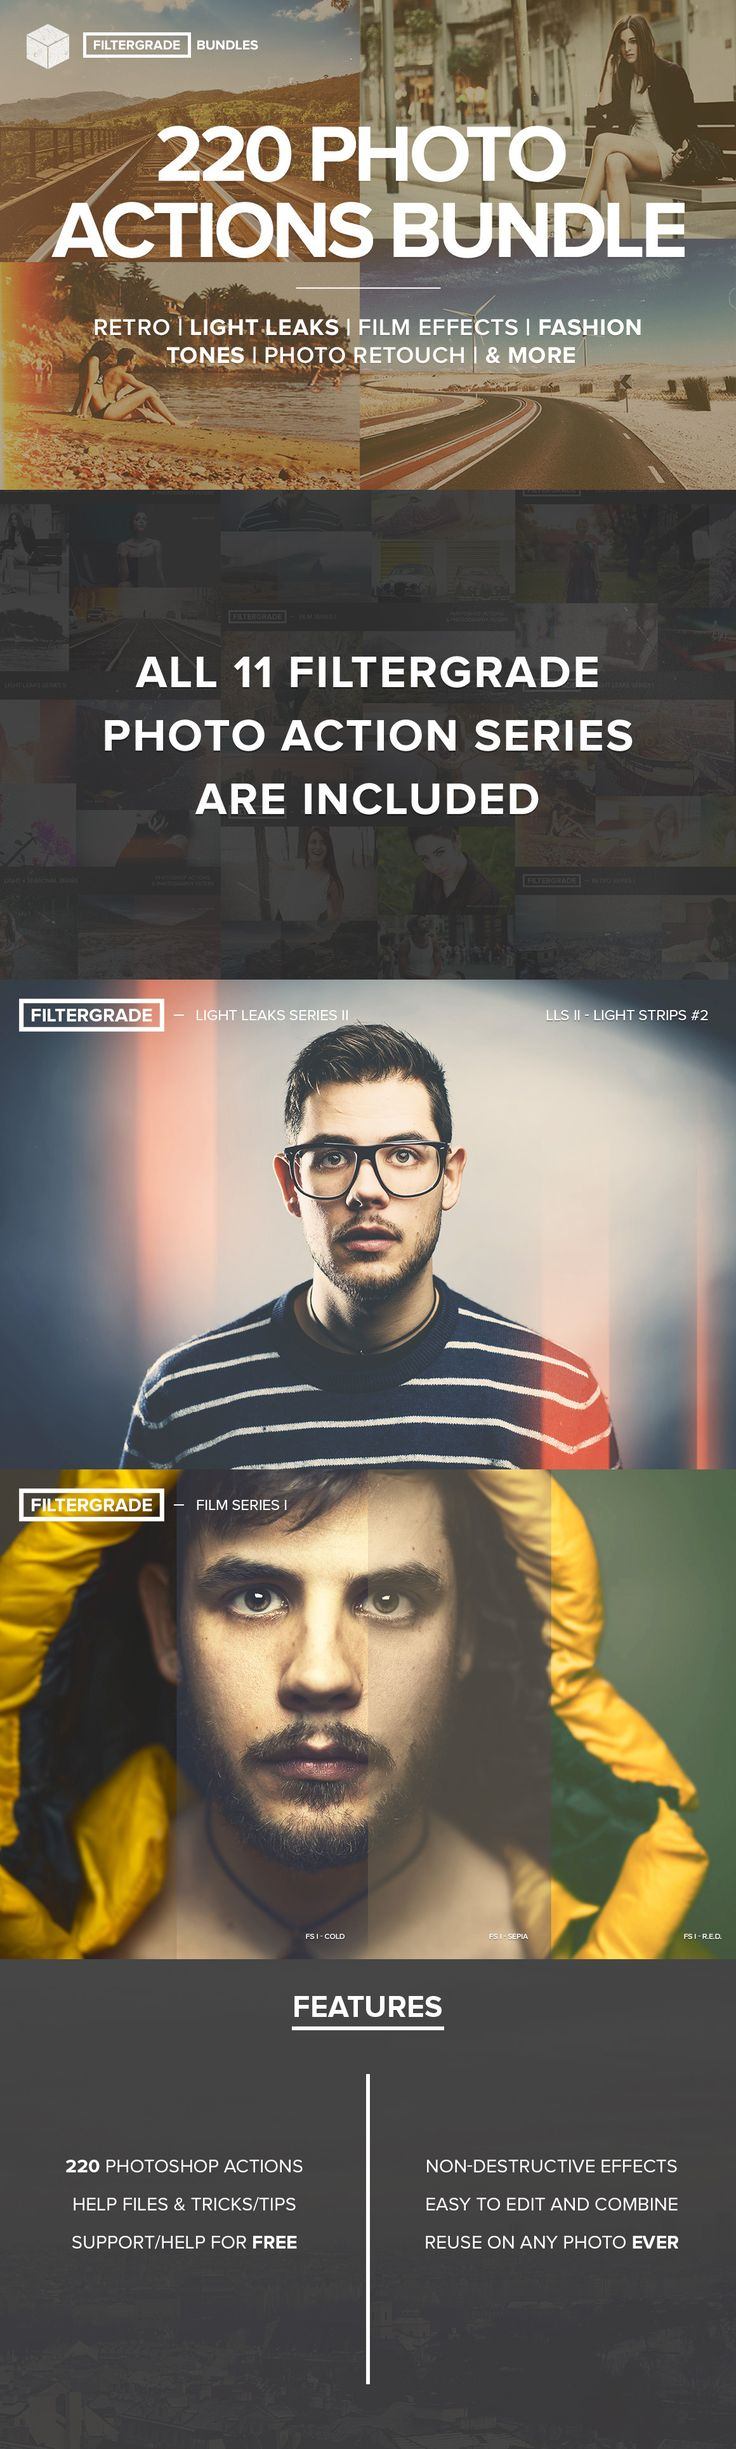 Save hours of your time by using some of the most advanced Photoshop actions on the web to edit, adjust, and enhance your photos.